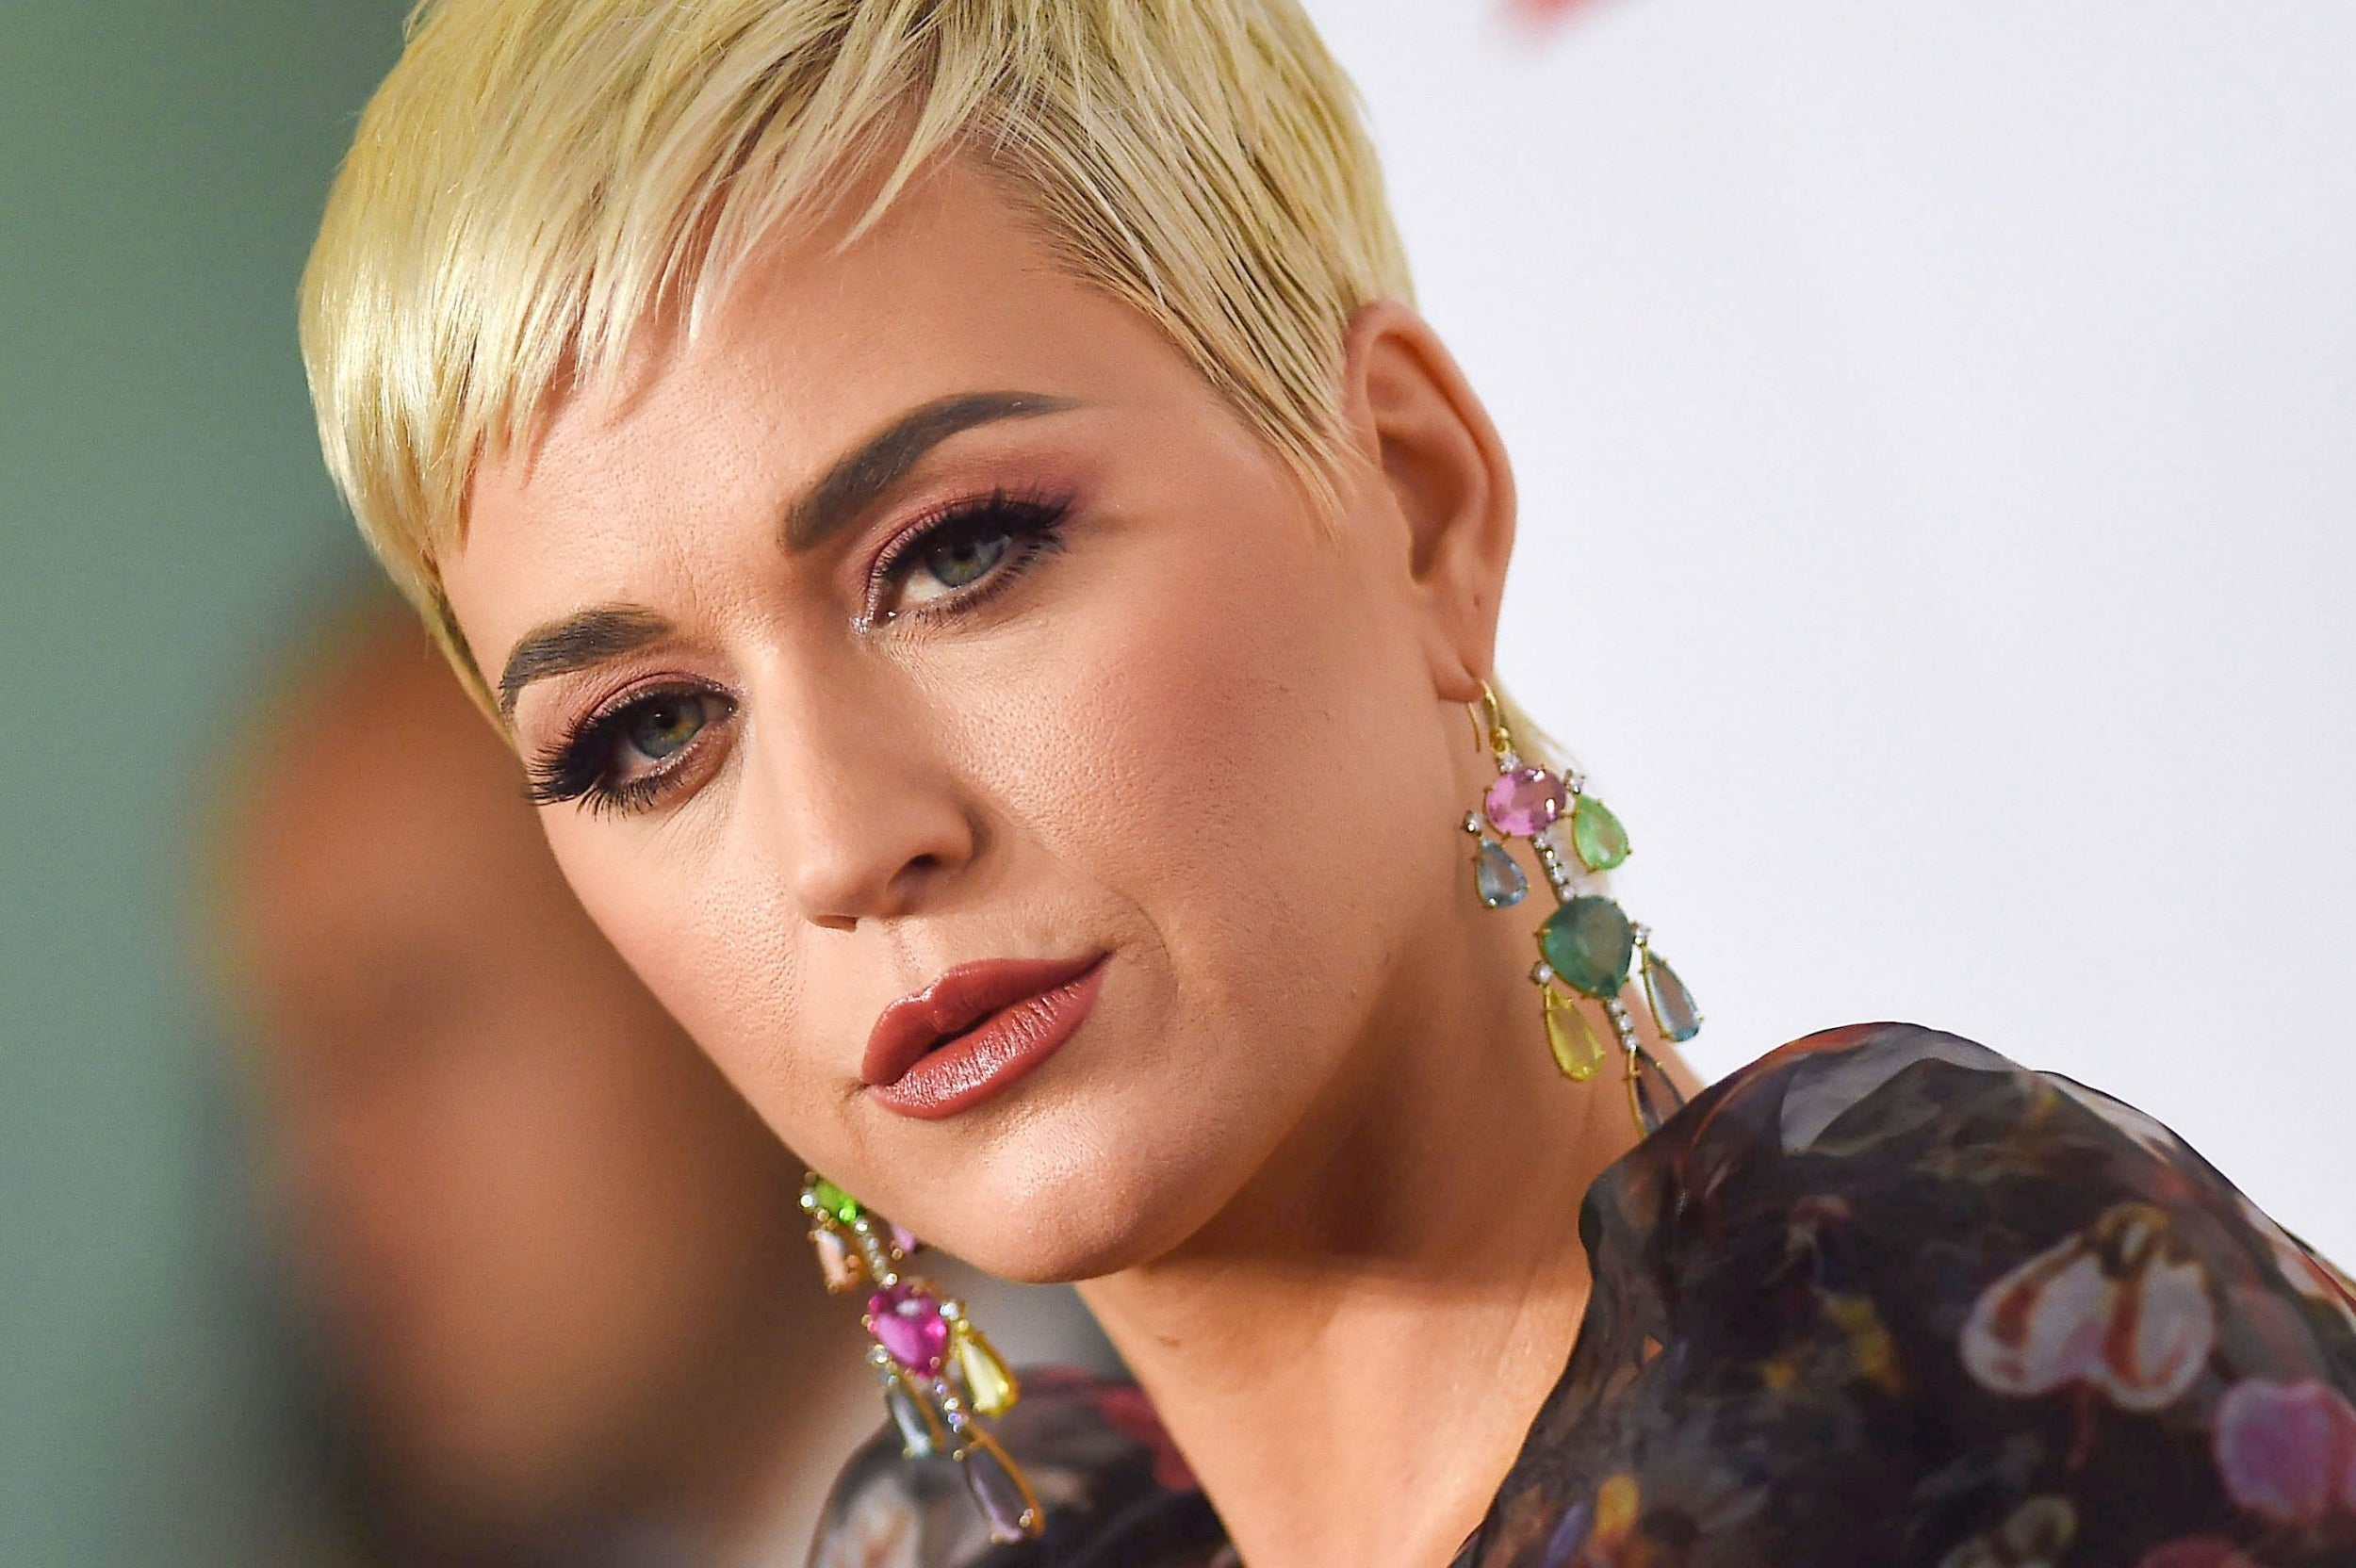 Katy Perry appeals plagiarism ruling in Christian rap song case